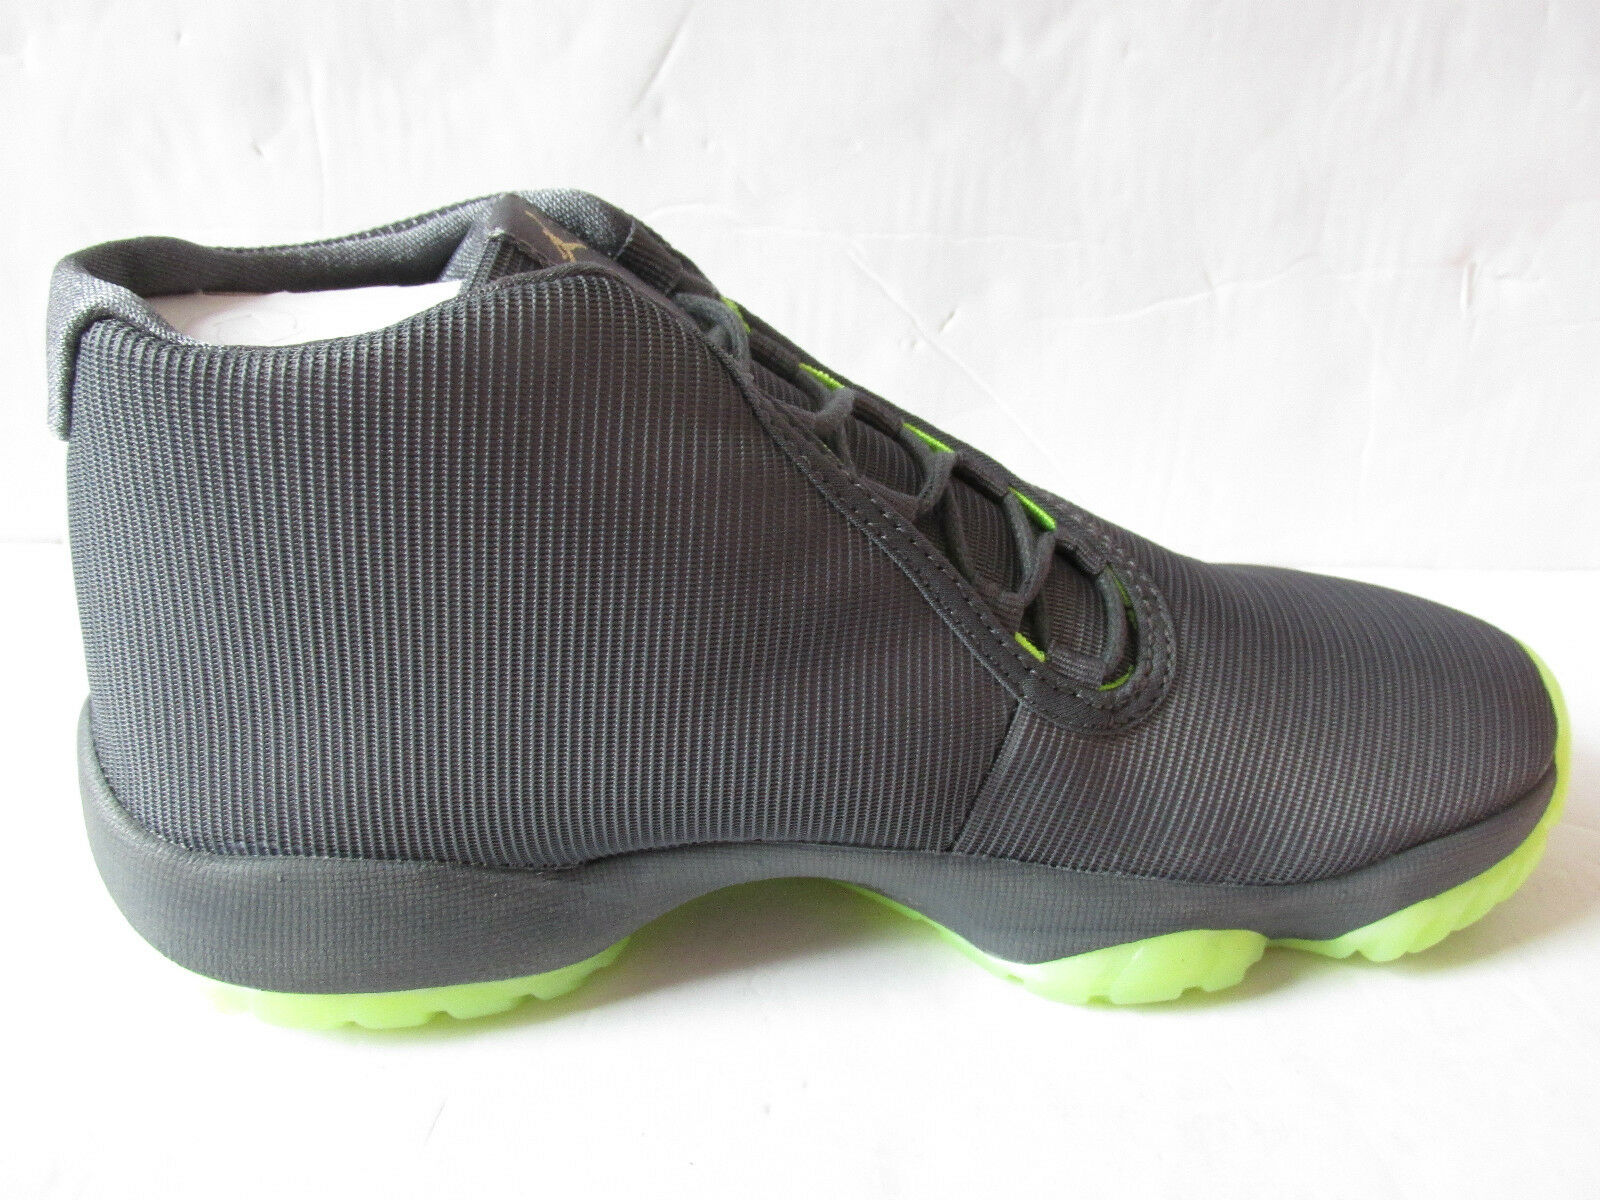 nike air jordan future homme  trainers hi top basketball trainers  656503 025 Baskets  chaussures 352f79